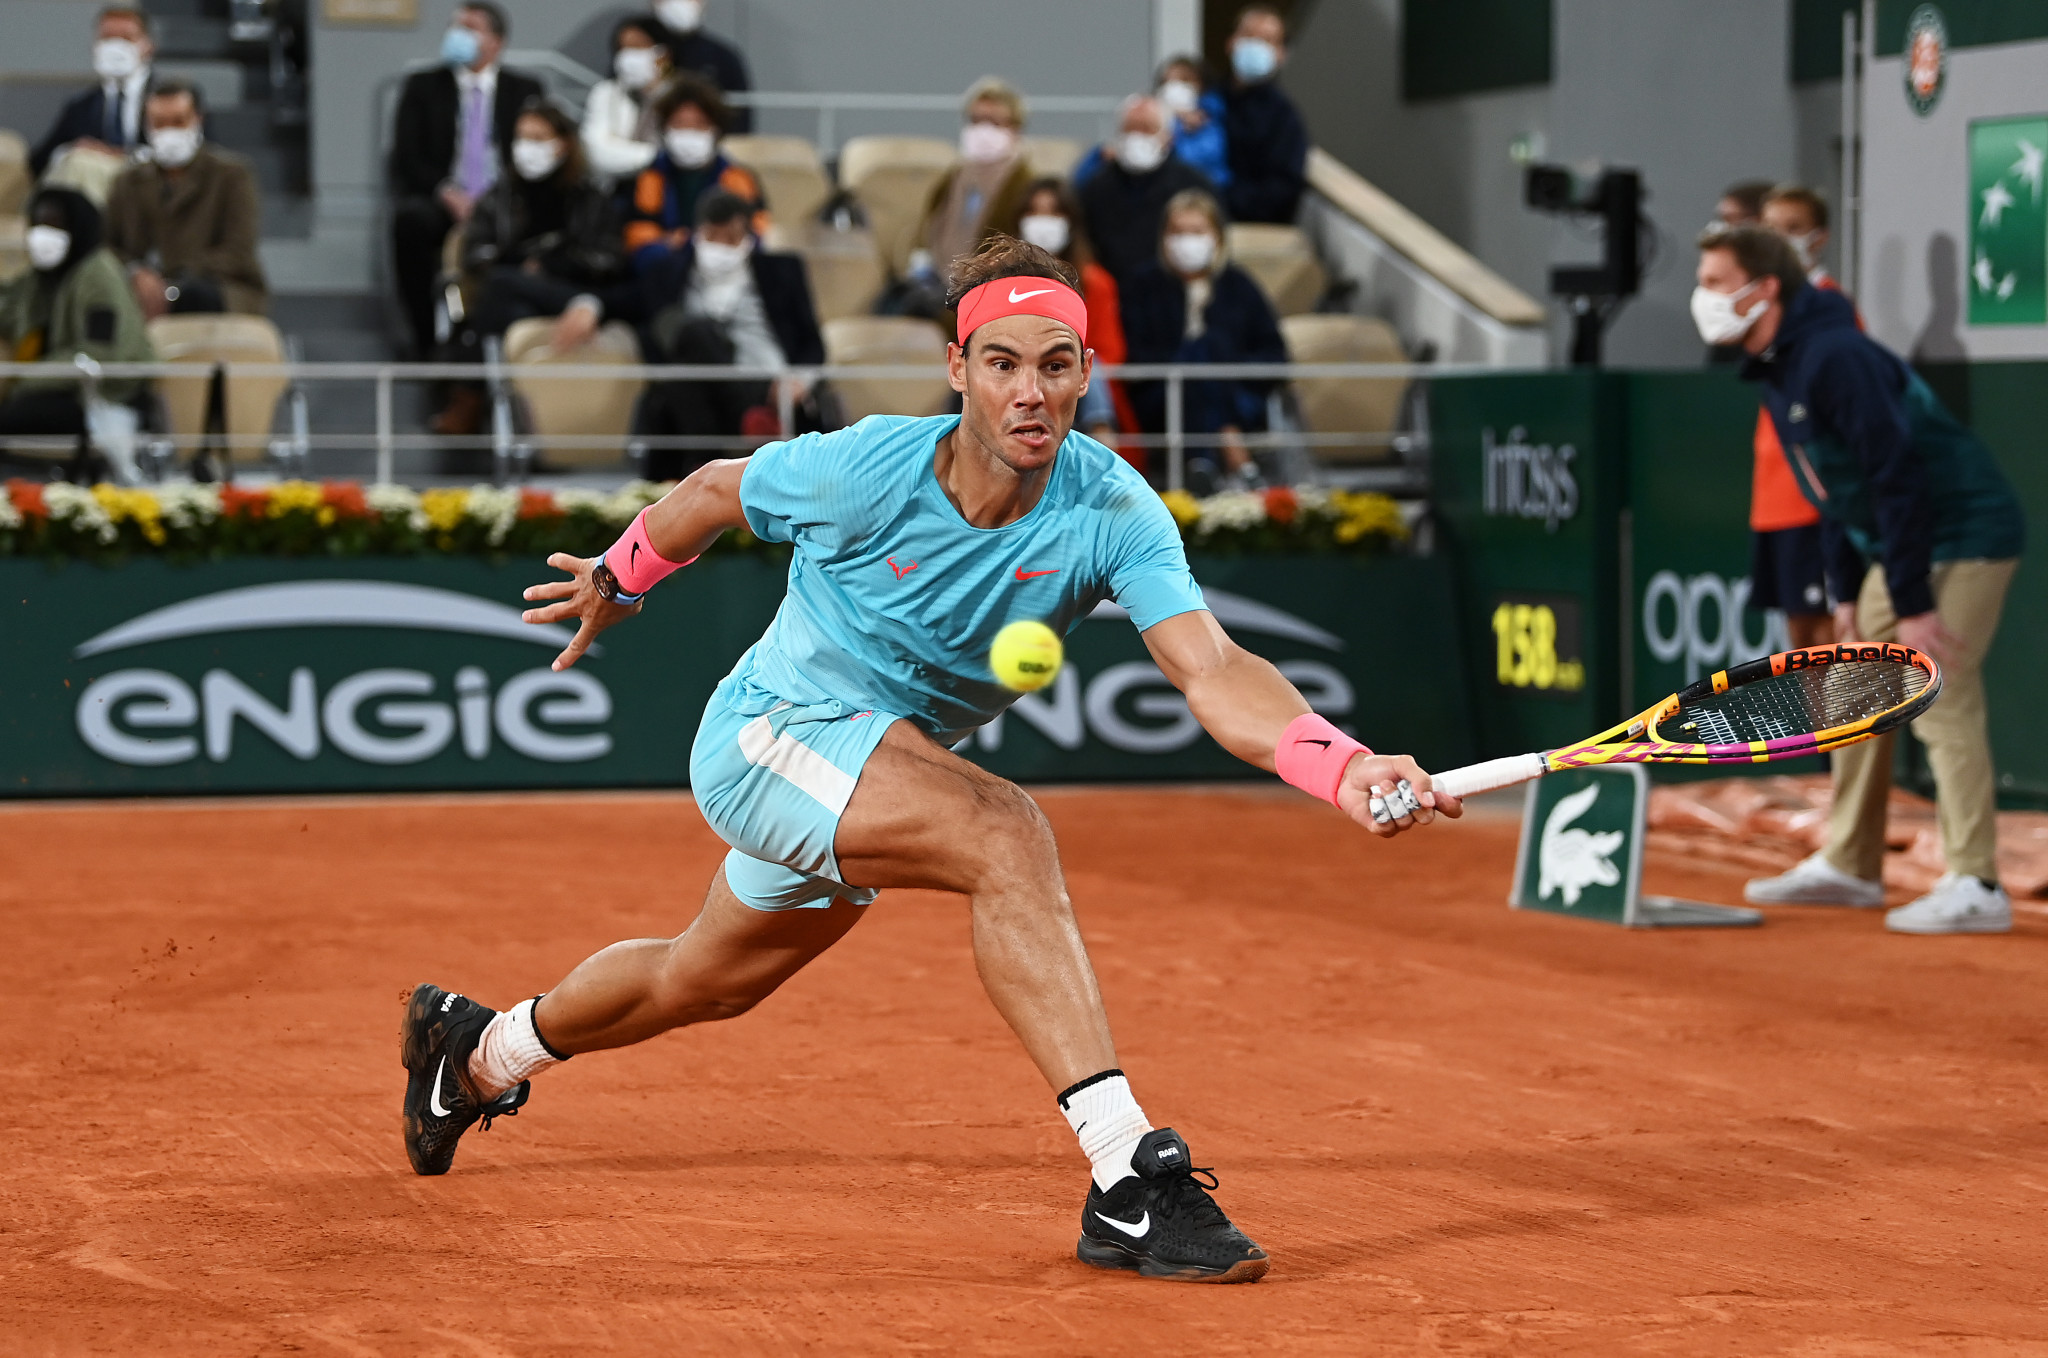 Nadal was in sensational form as he dropped just two games in the opening two sets ©Getty Images